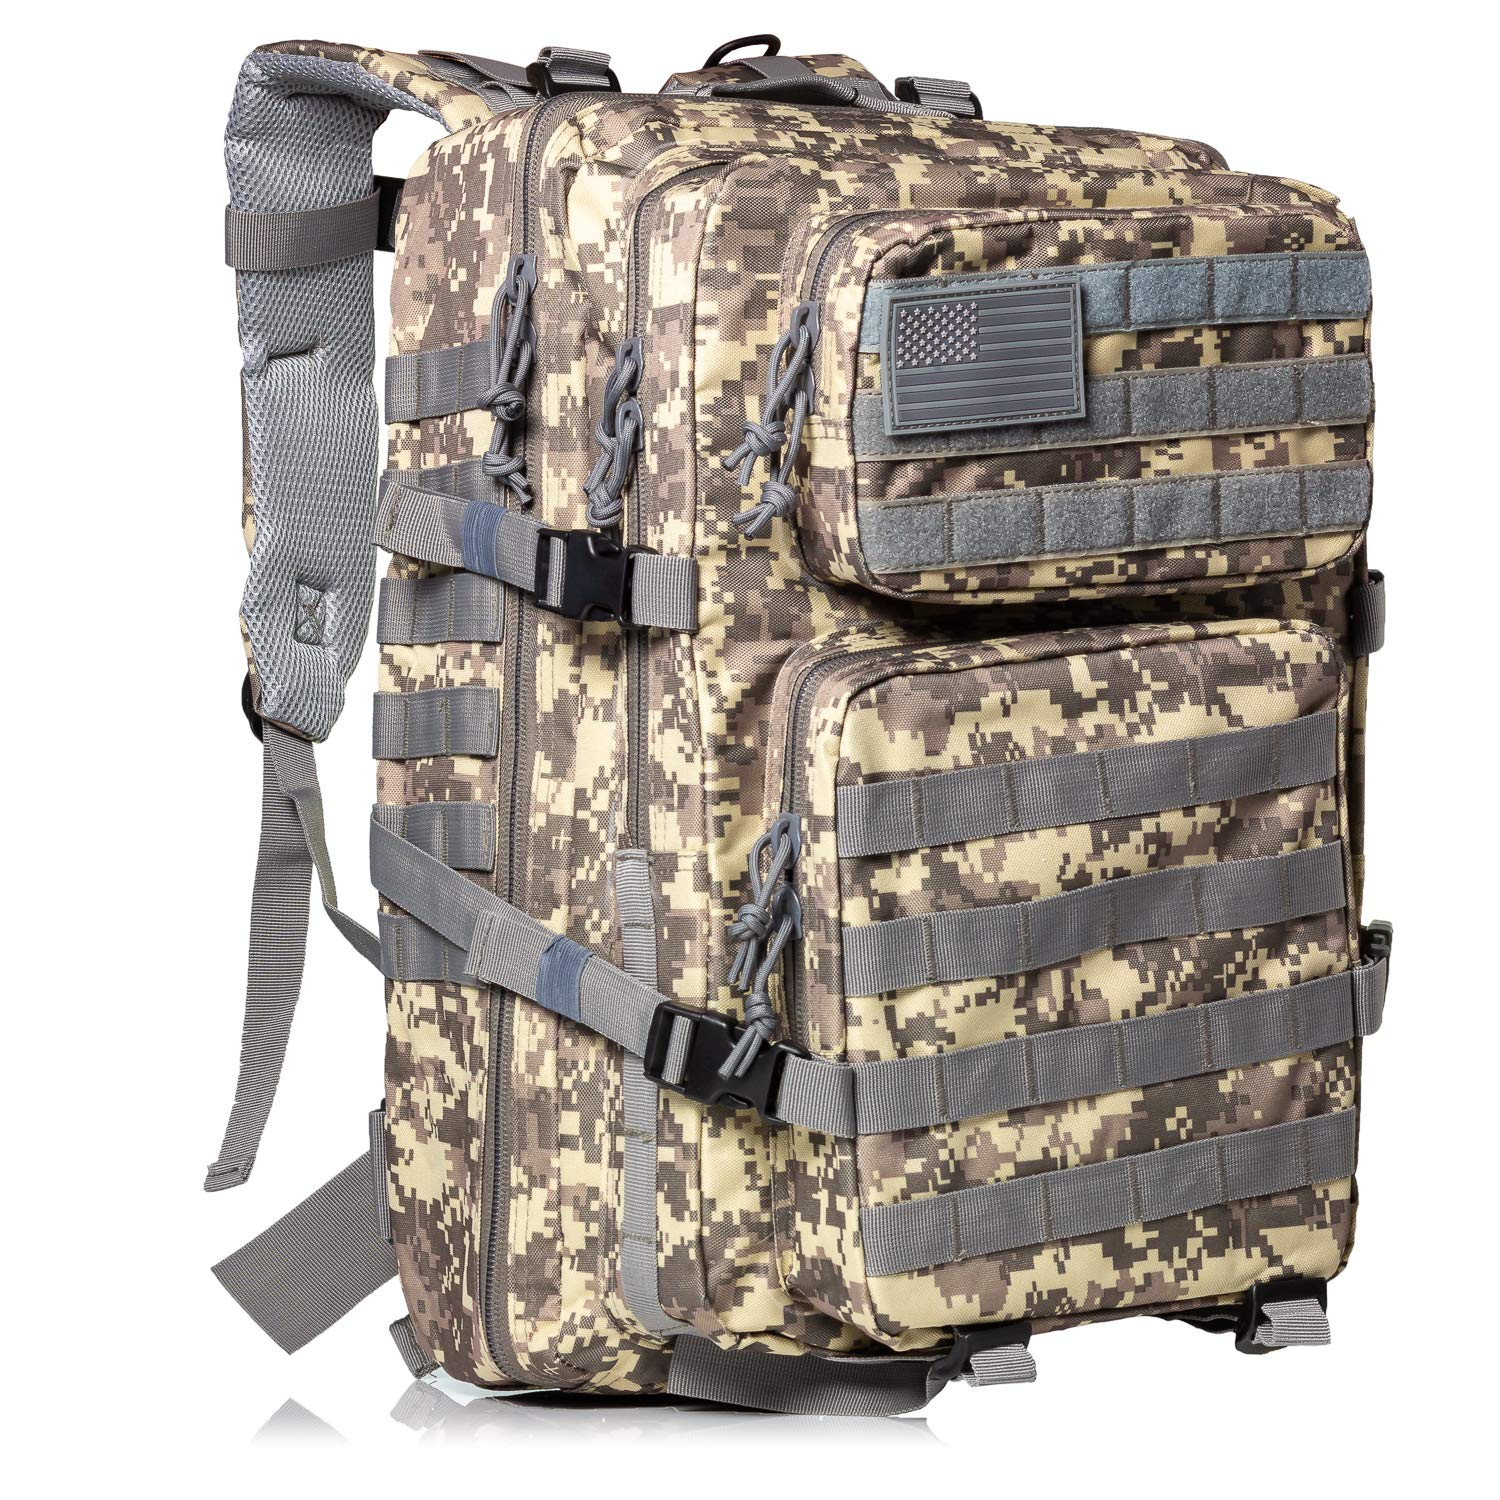 XFinder MilitaryTactical Backpack Large Assault Pack 3 Day Army Rucksacks  Outdoor Hunting Backpacks with Tactical USA Flag Patch 638b6ddeee701